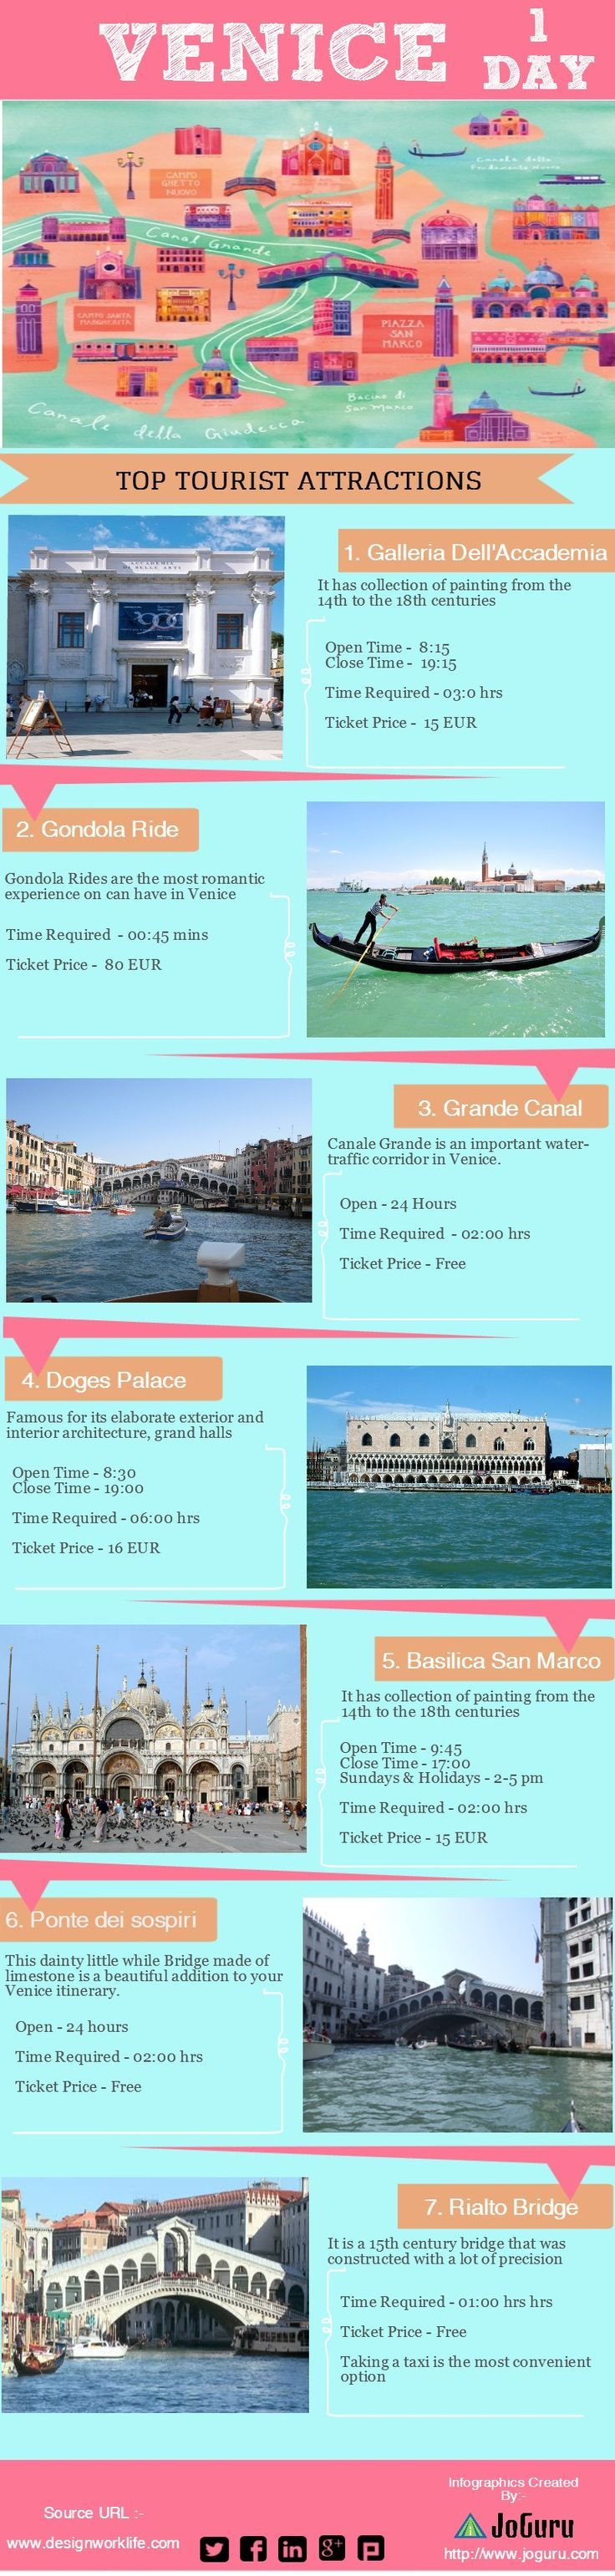 Venice in 1 day. www.milesfortrips.com